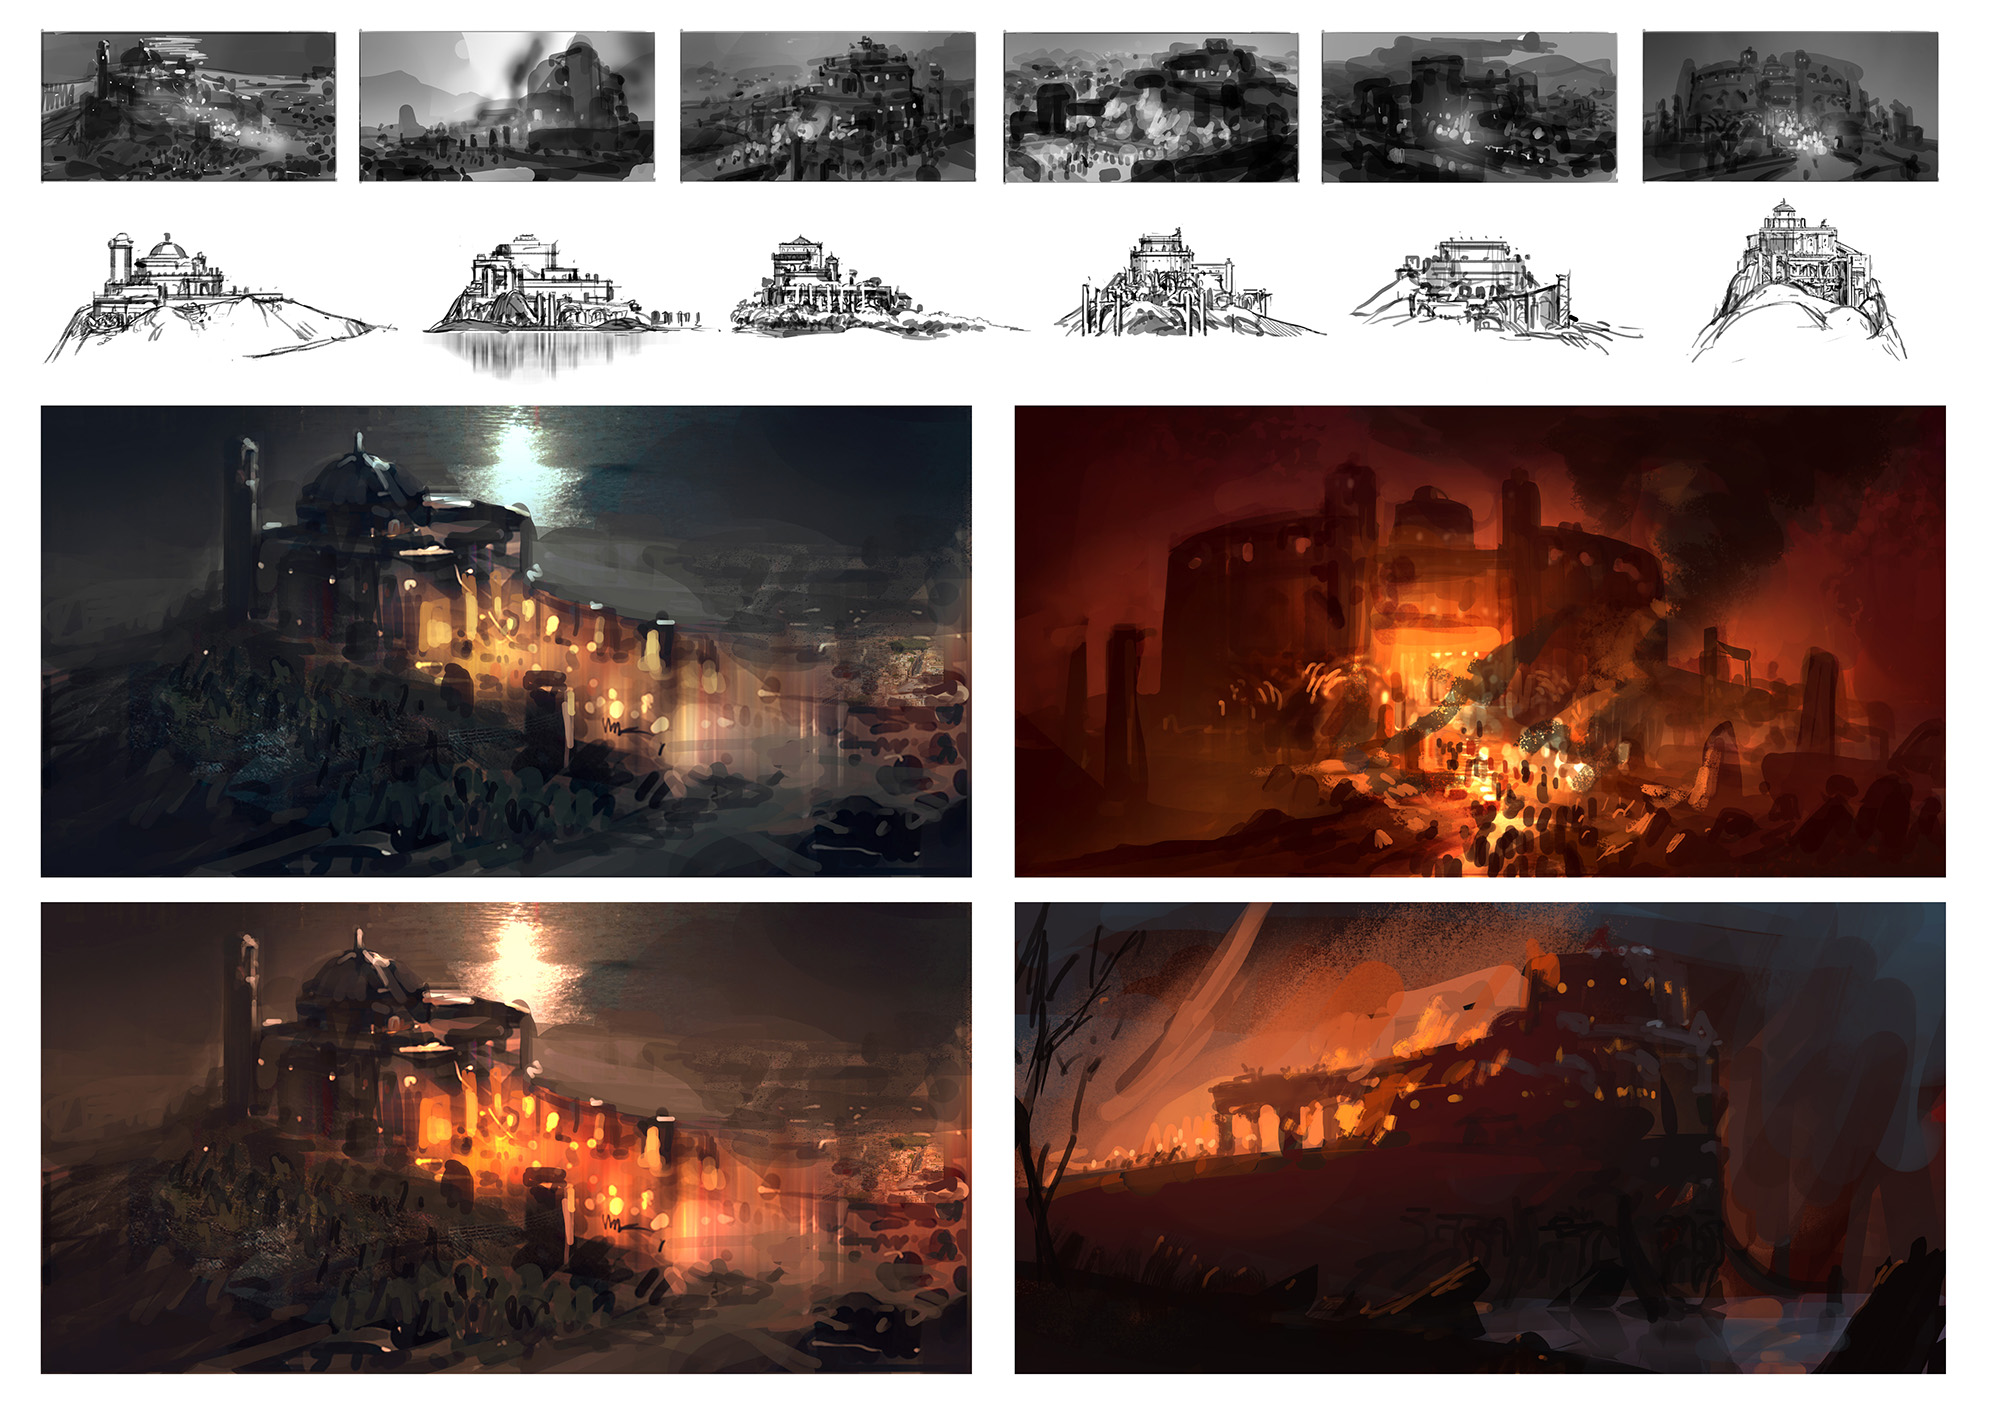 Environment_Prologue_EstablishingShot_Thumbnails.jpg